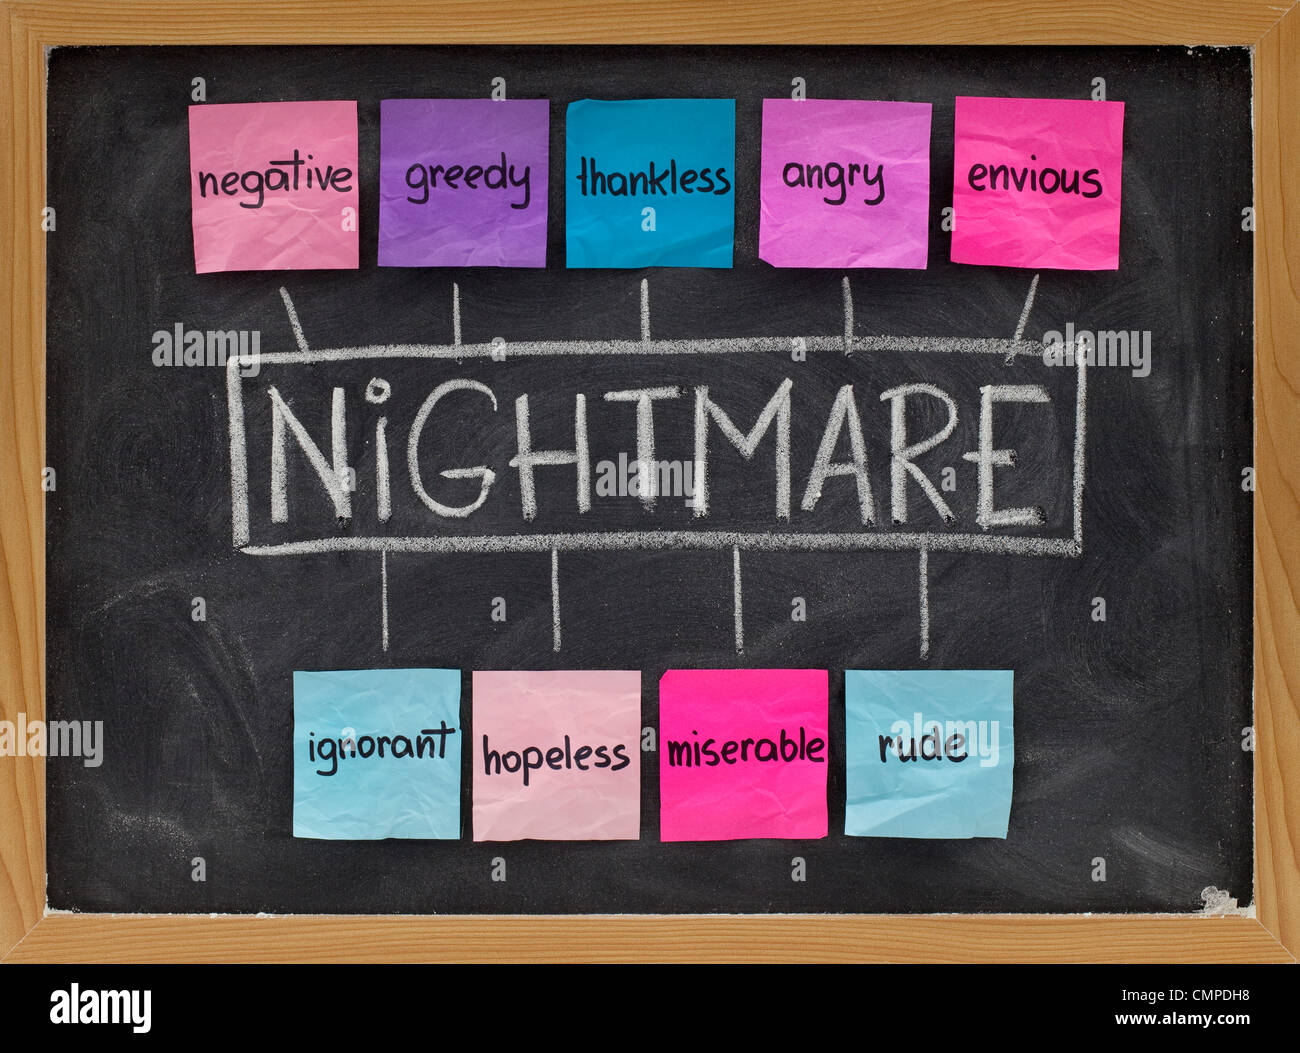 NIGHTMARE (Negative, Ignorant, Greedy, Hopeless, Thankless, Miserable, Angry, Rude, Envious) acronym of negative - Stock Image